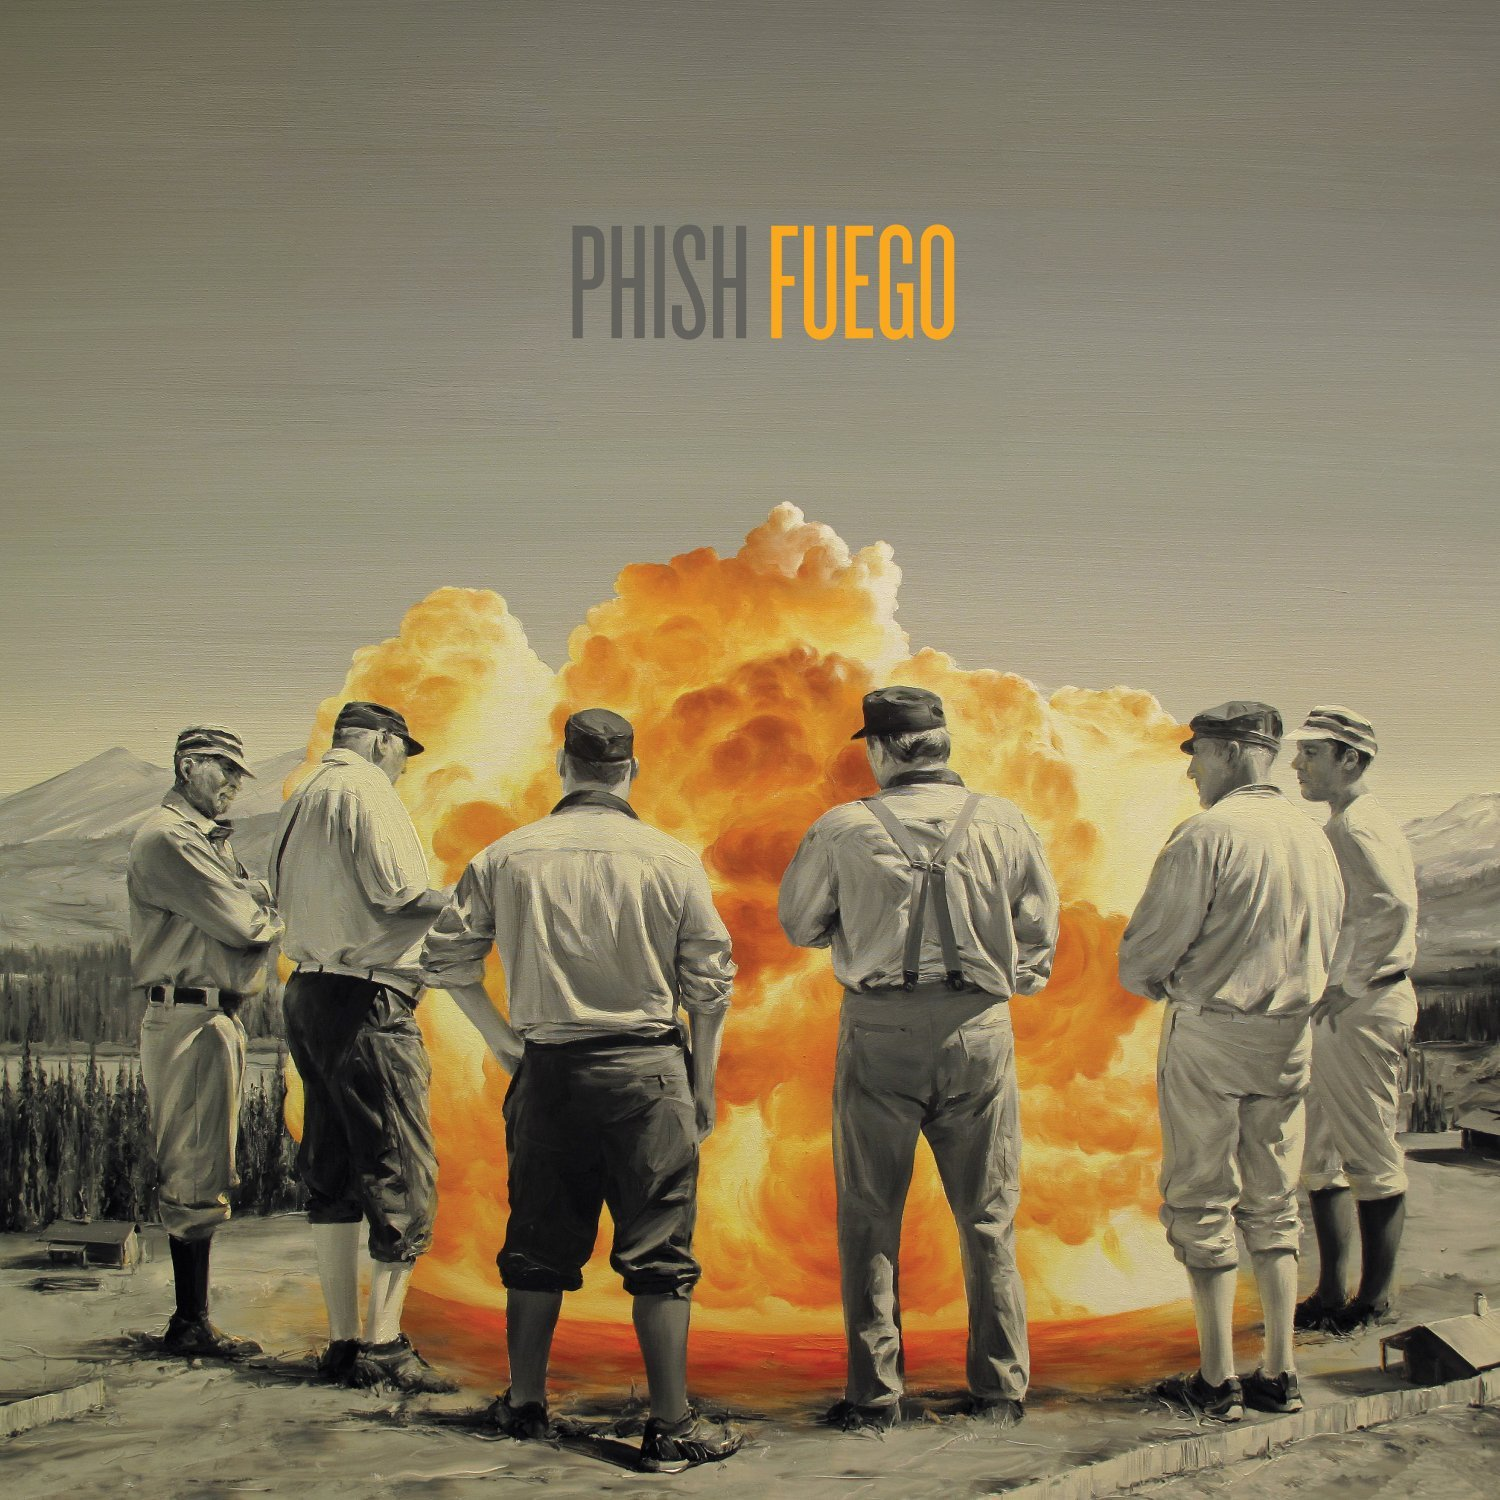 Phish's 'Fuego' is out now.